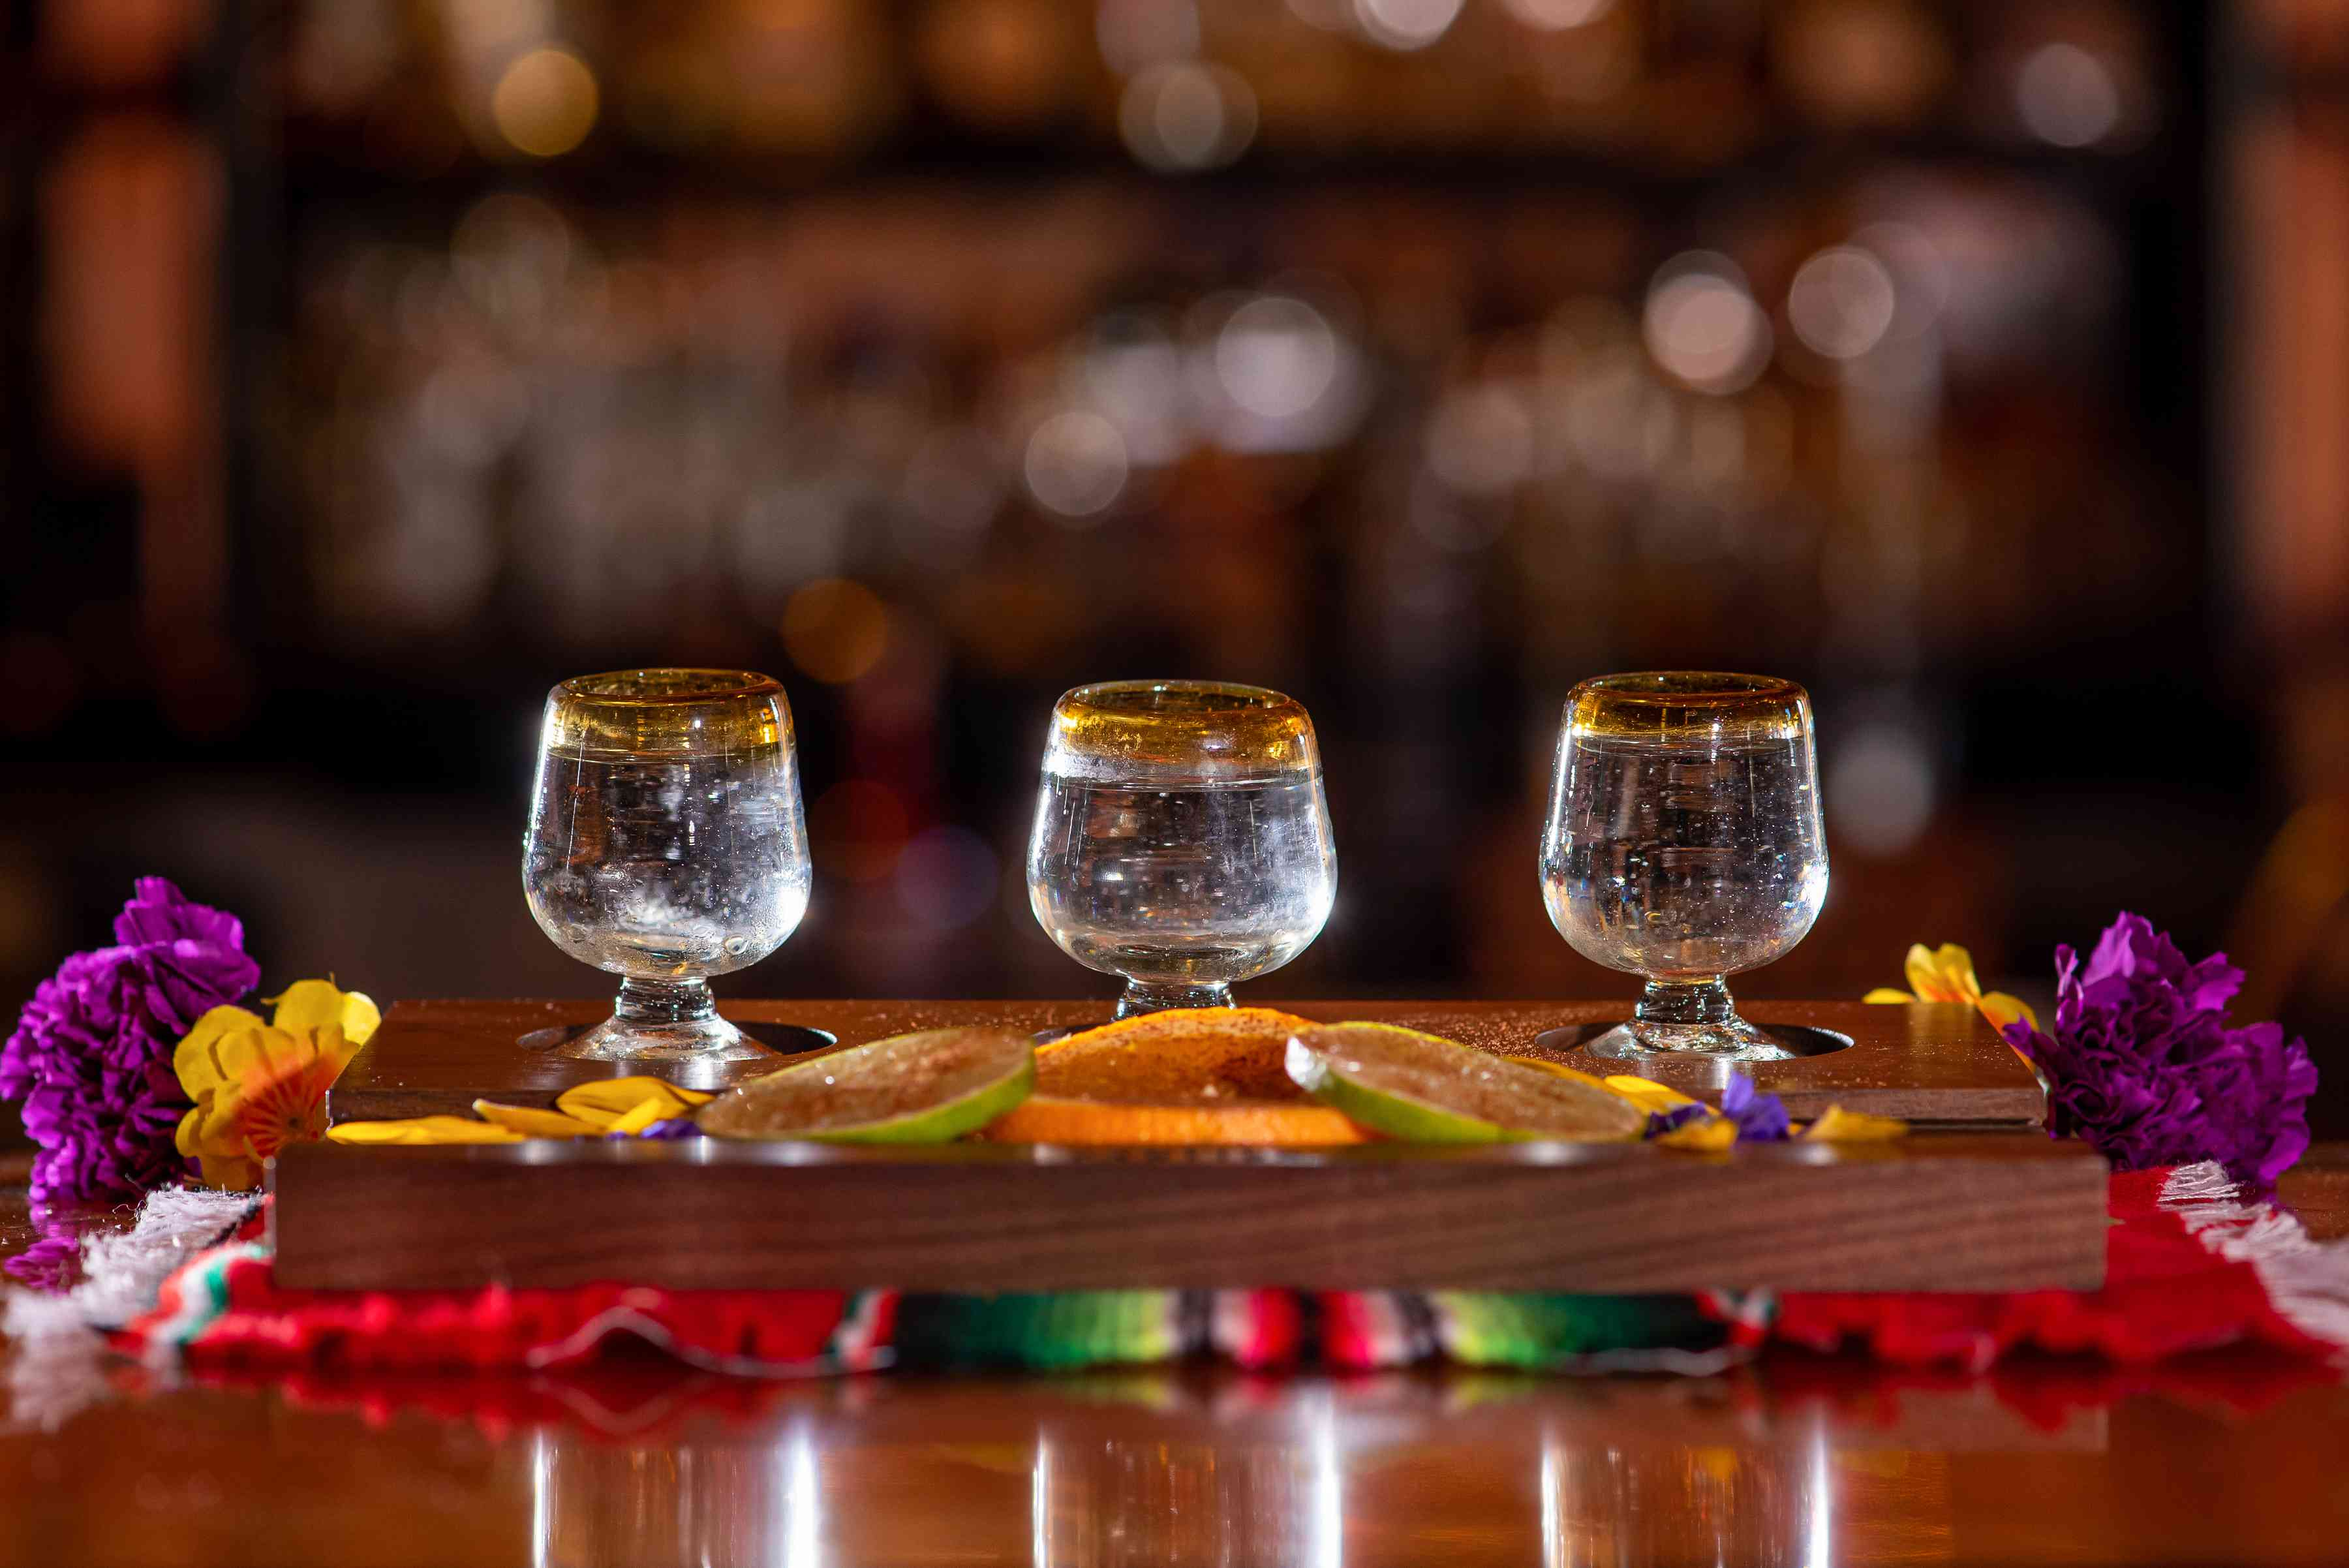 A Flight of Tequila and Mezcal